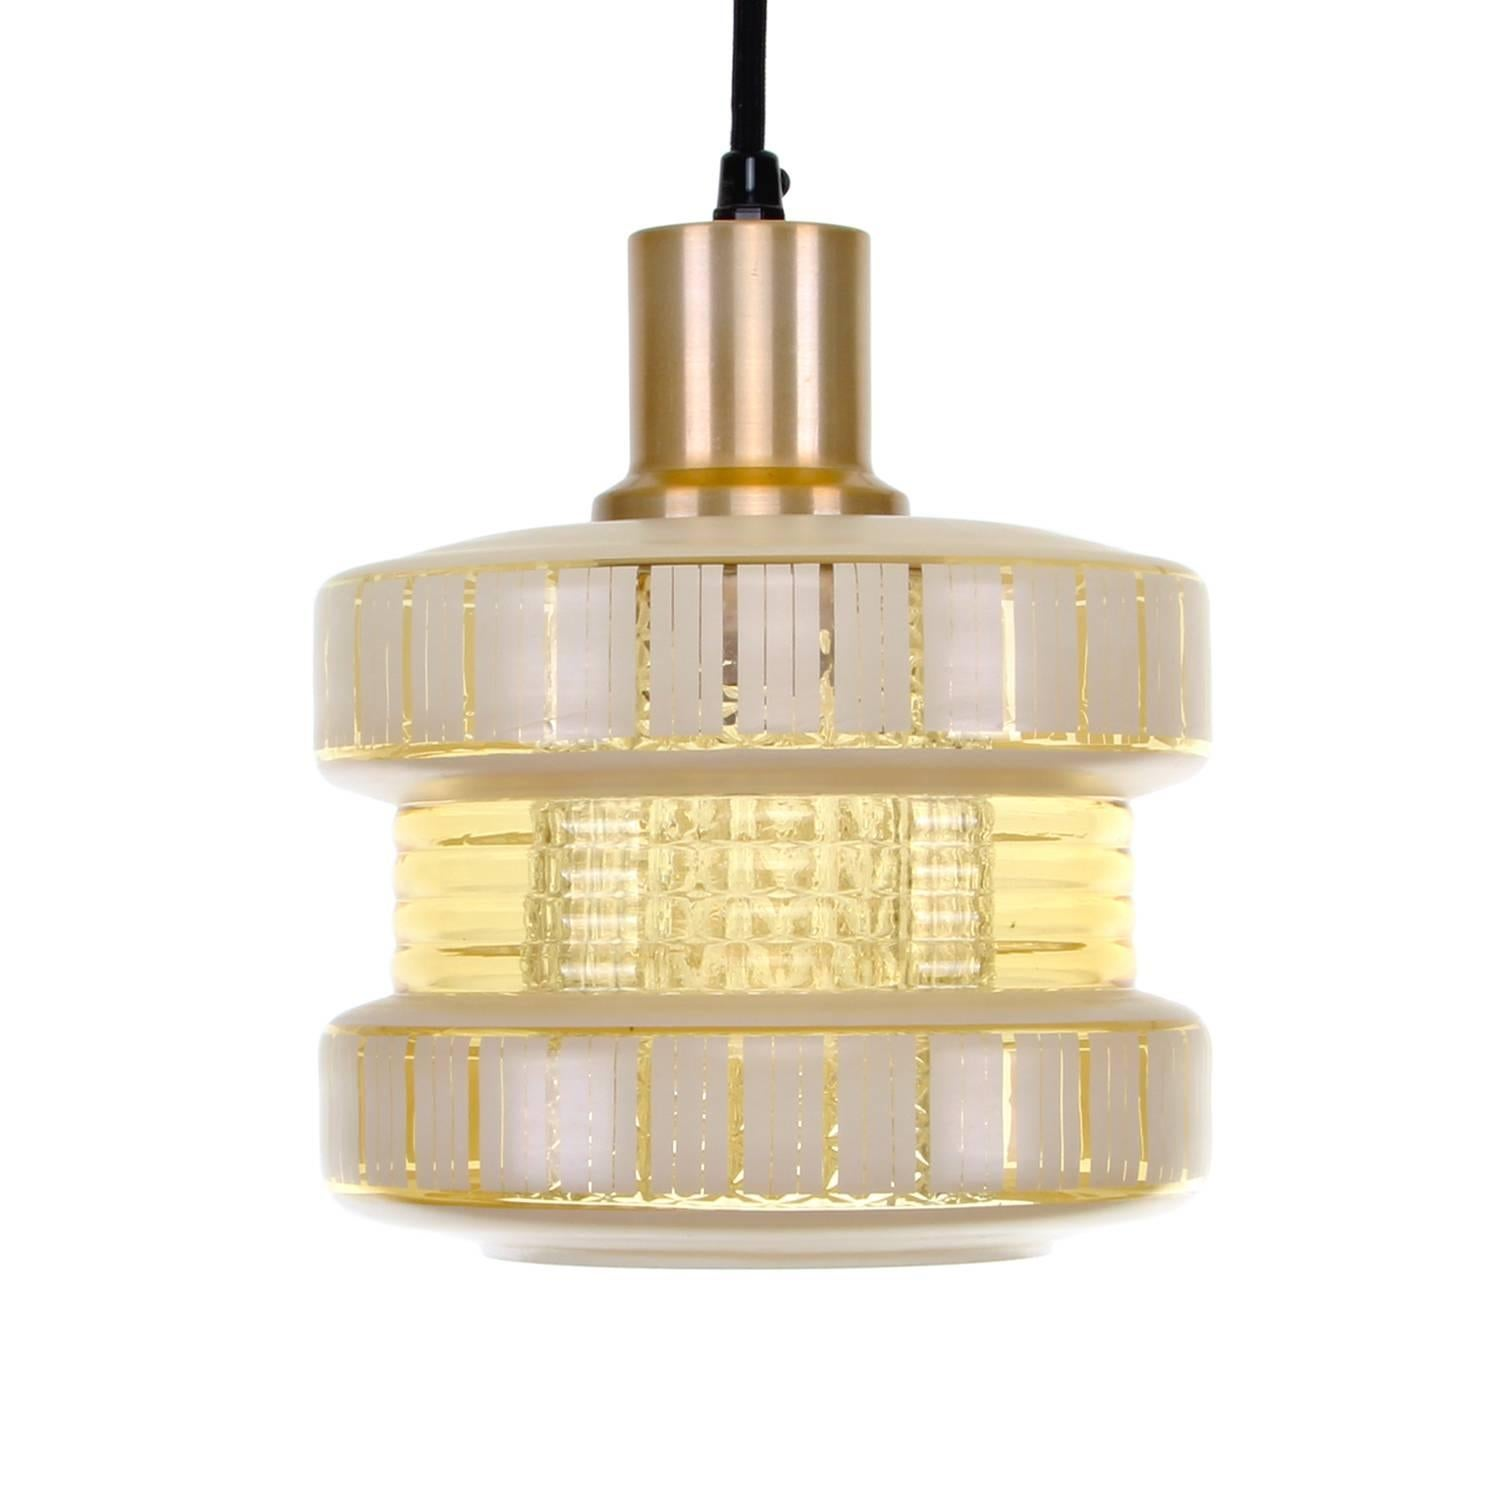 up pendant manhattan pin light pinterest mercury glass dunelm